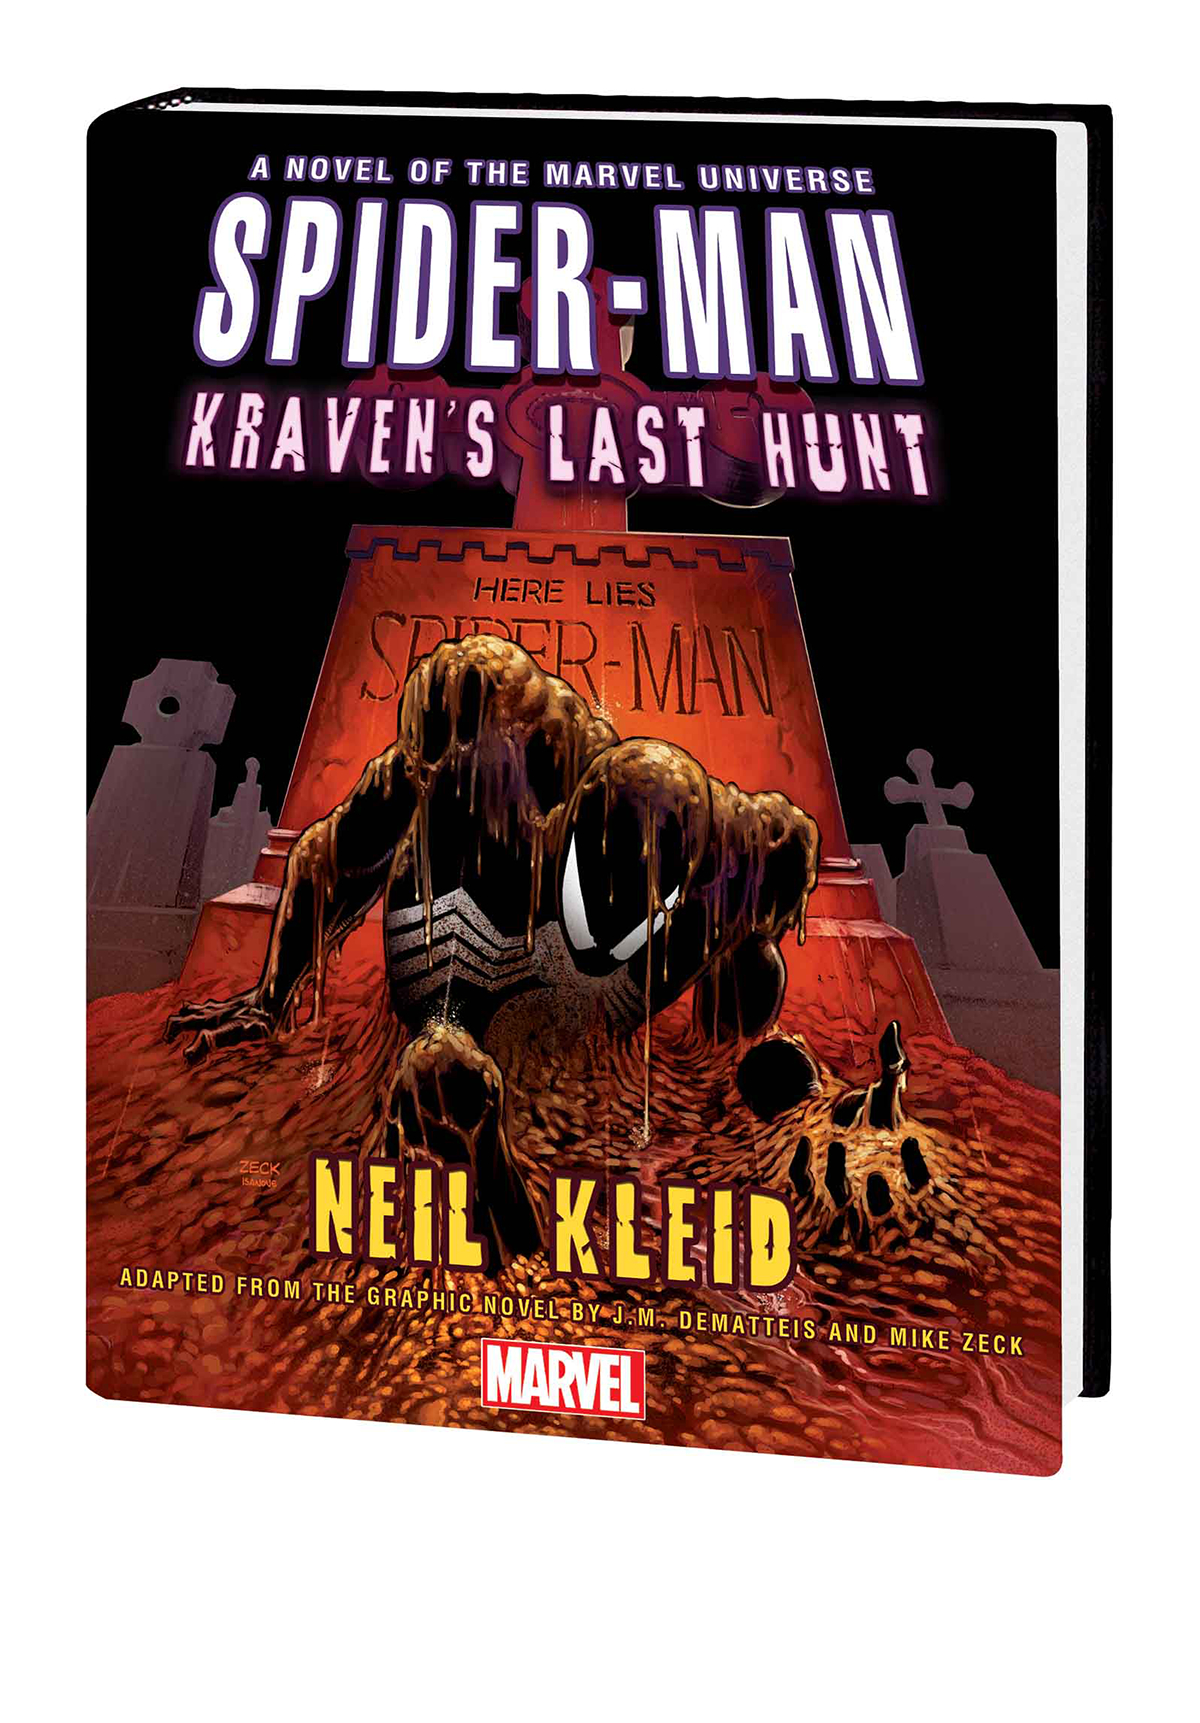 SPIDER-MAN KRAVENS LAST HUNT PROSE NOVEL HC